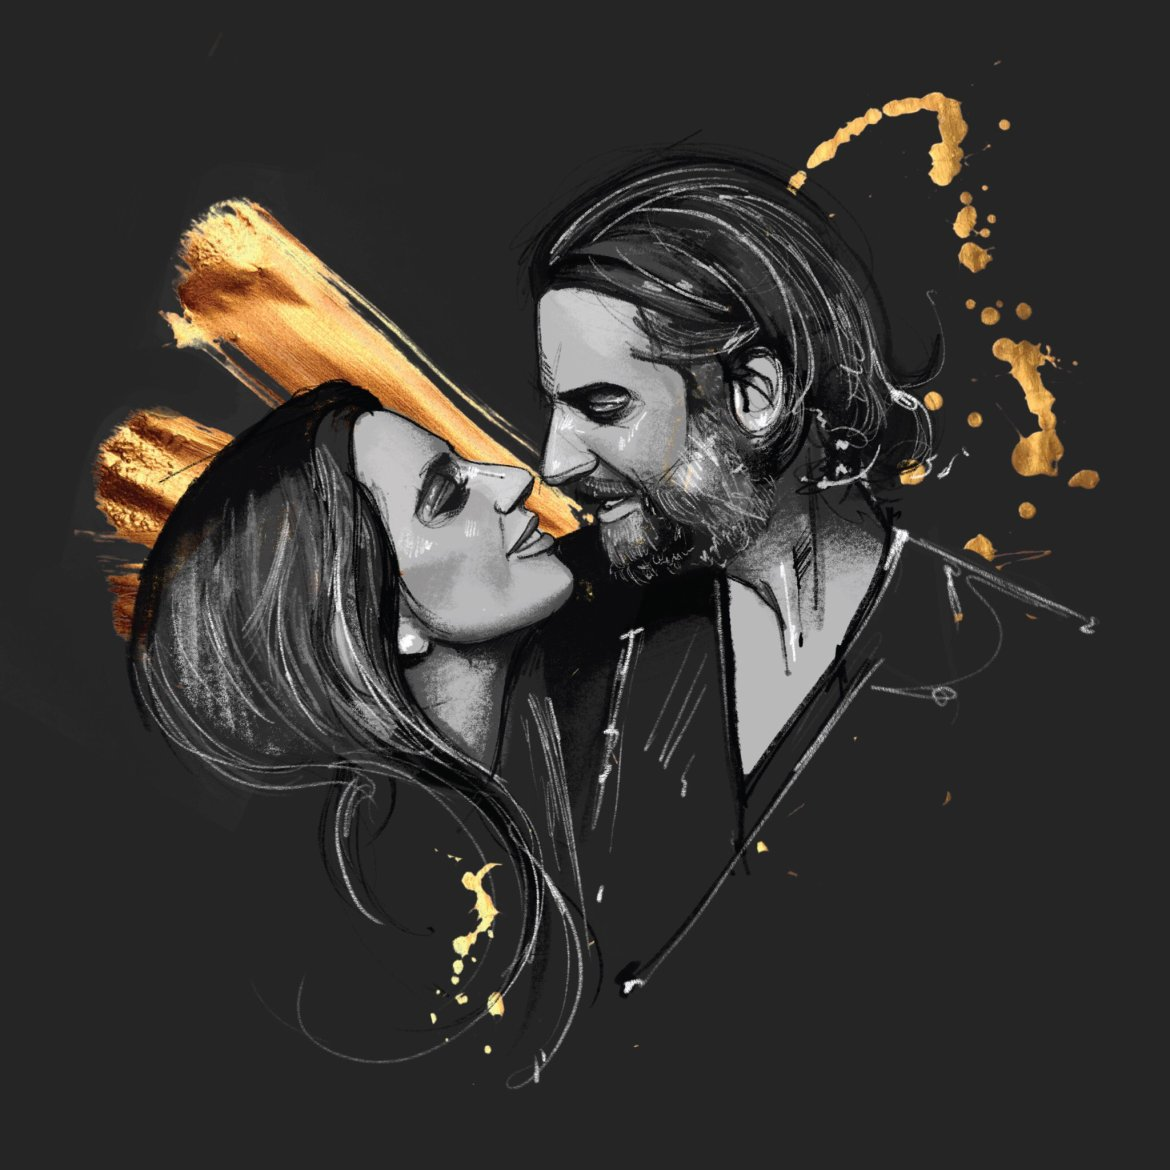 A dark grey background, with a man and a woman looking into each others eyes, about to kiss. They are drawn in black and white, and there is a shimmering gold accent behind them.